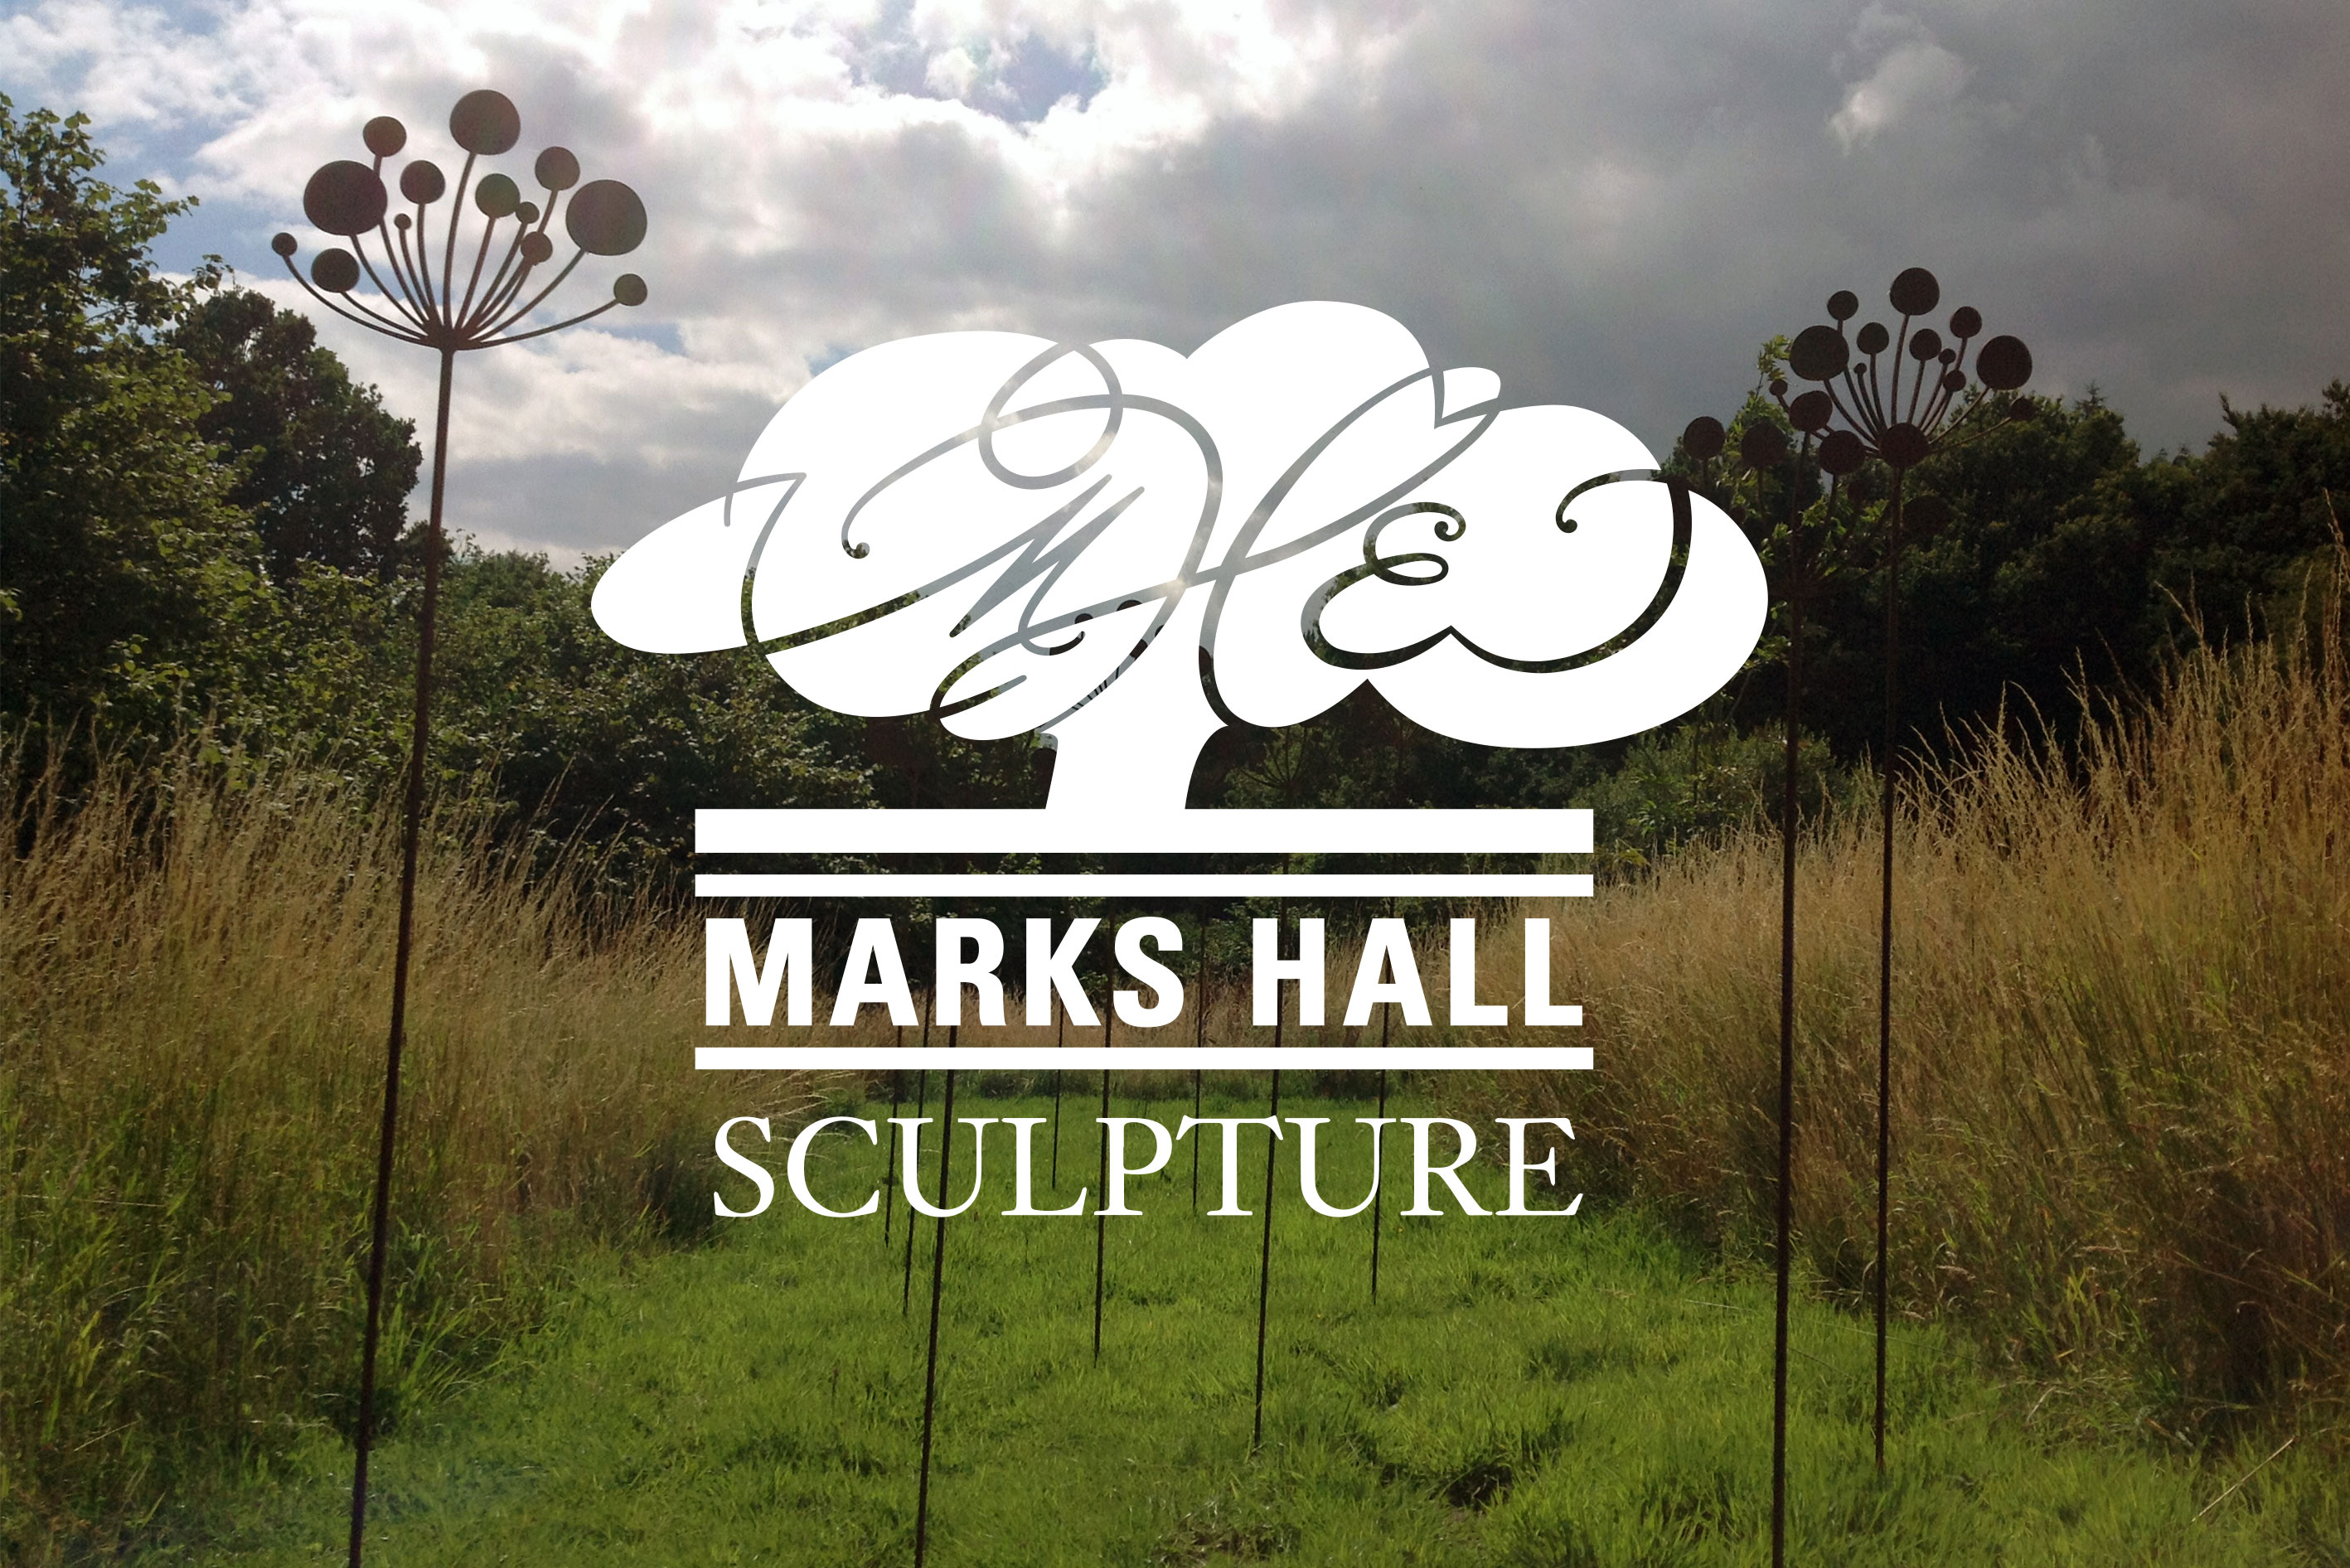 Marks Hall Sculpture Guide by Bazzoo